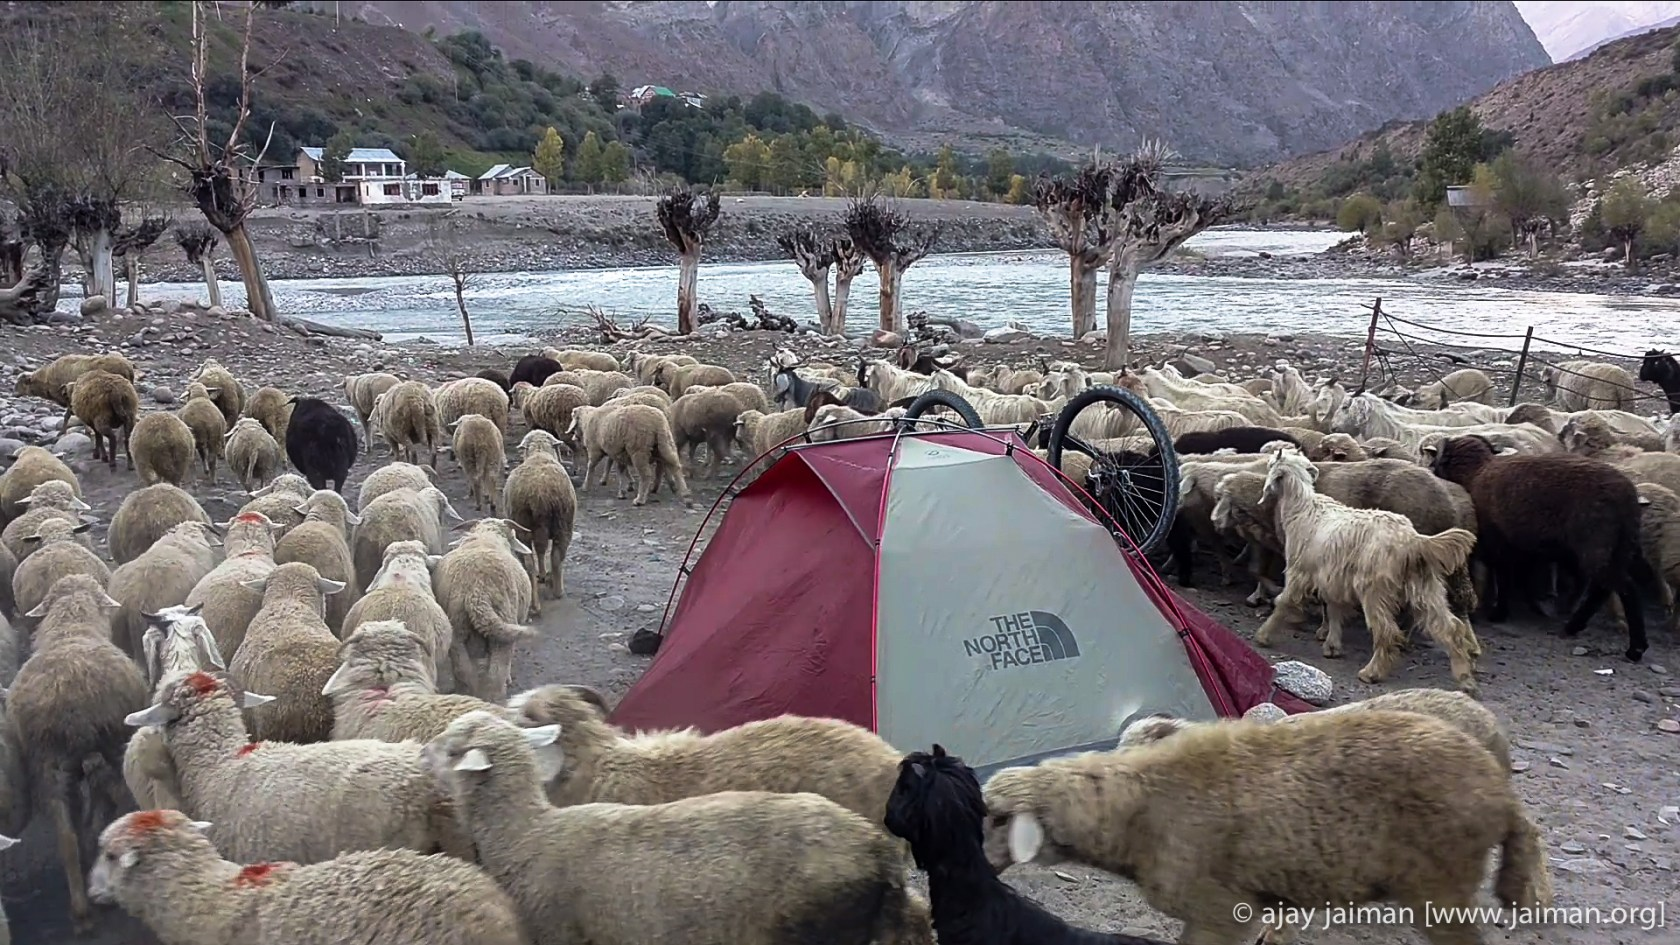 My camp at the Chadrabhaga river right next to the Tandi bridge.